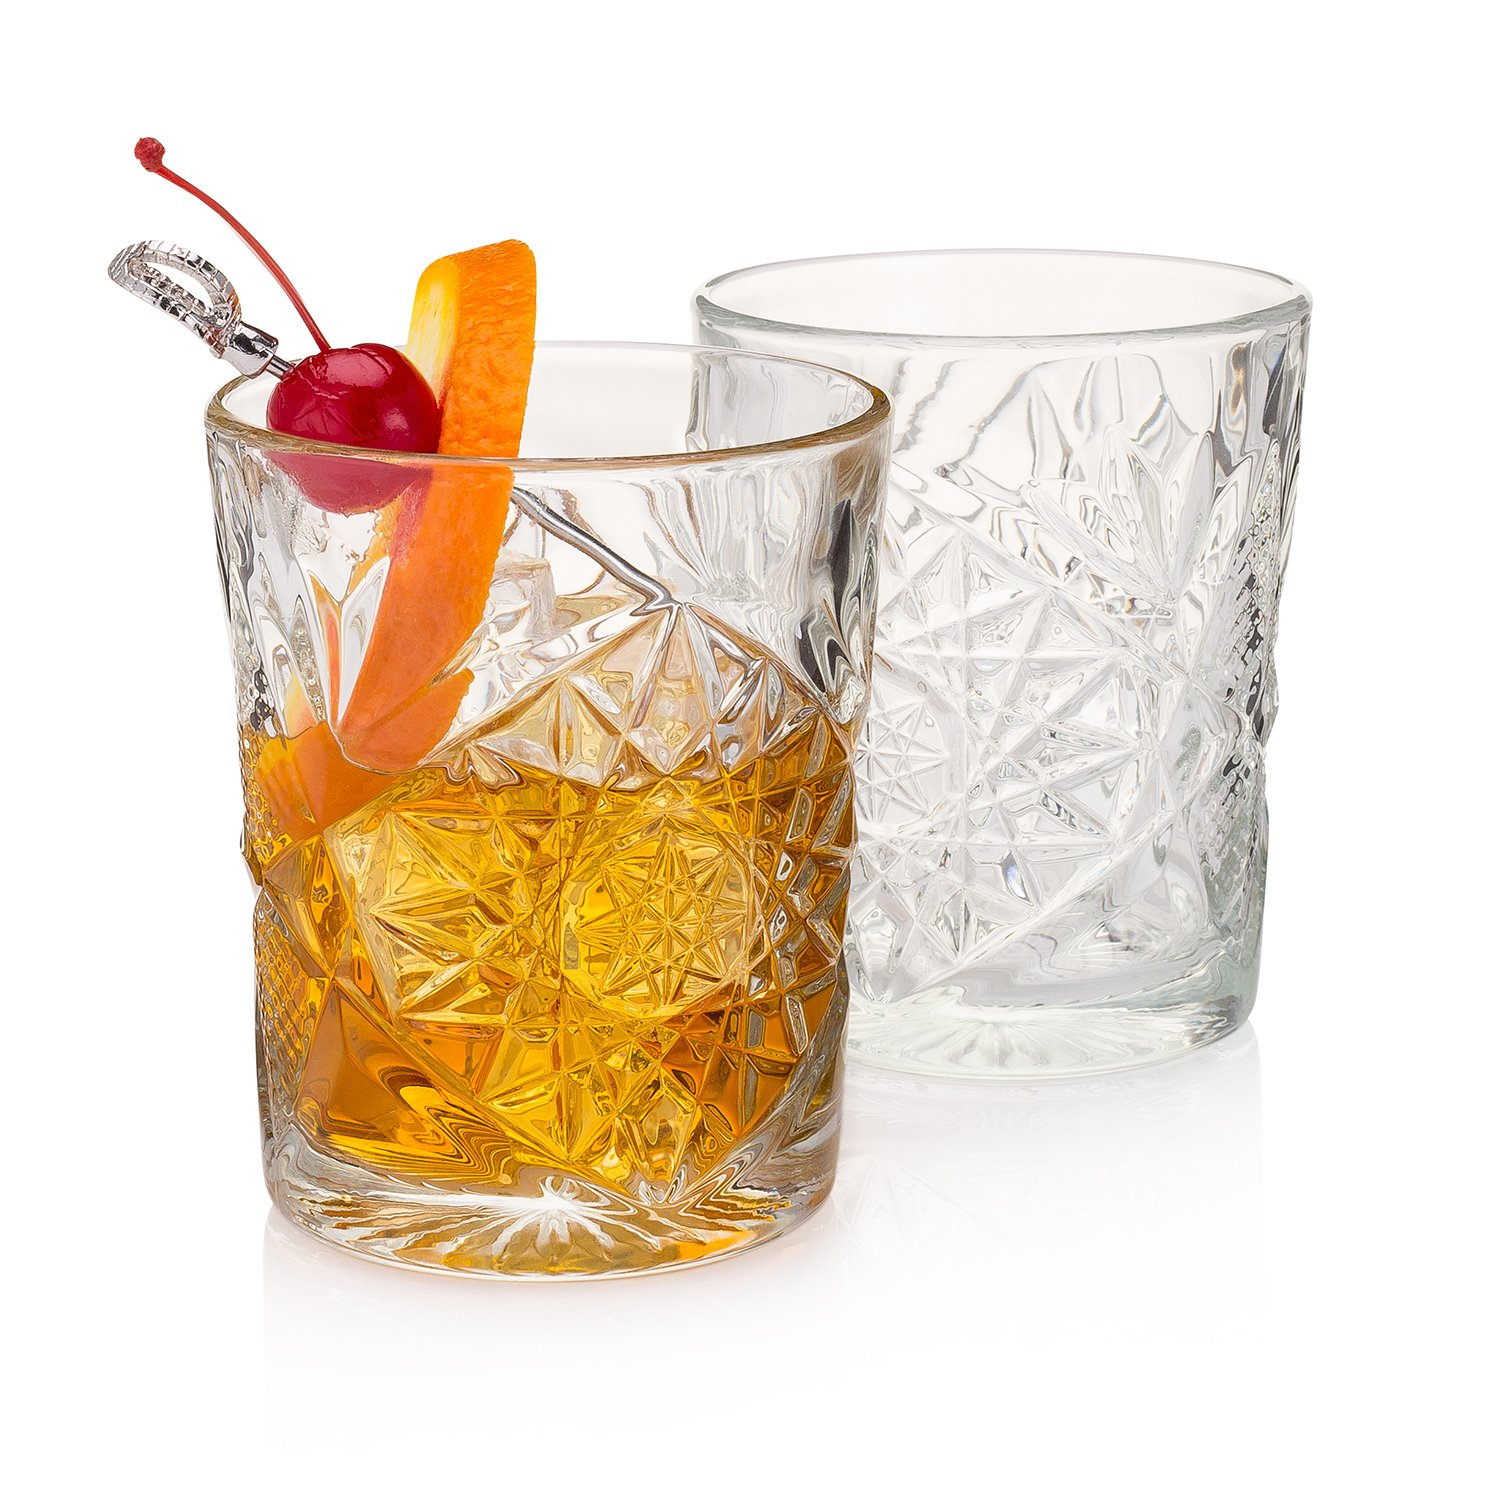 The''Tuxedo Park'' Old Fashioned Whiskey Glass (Men's Bar Set of 2)